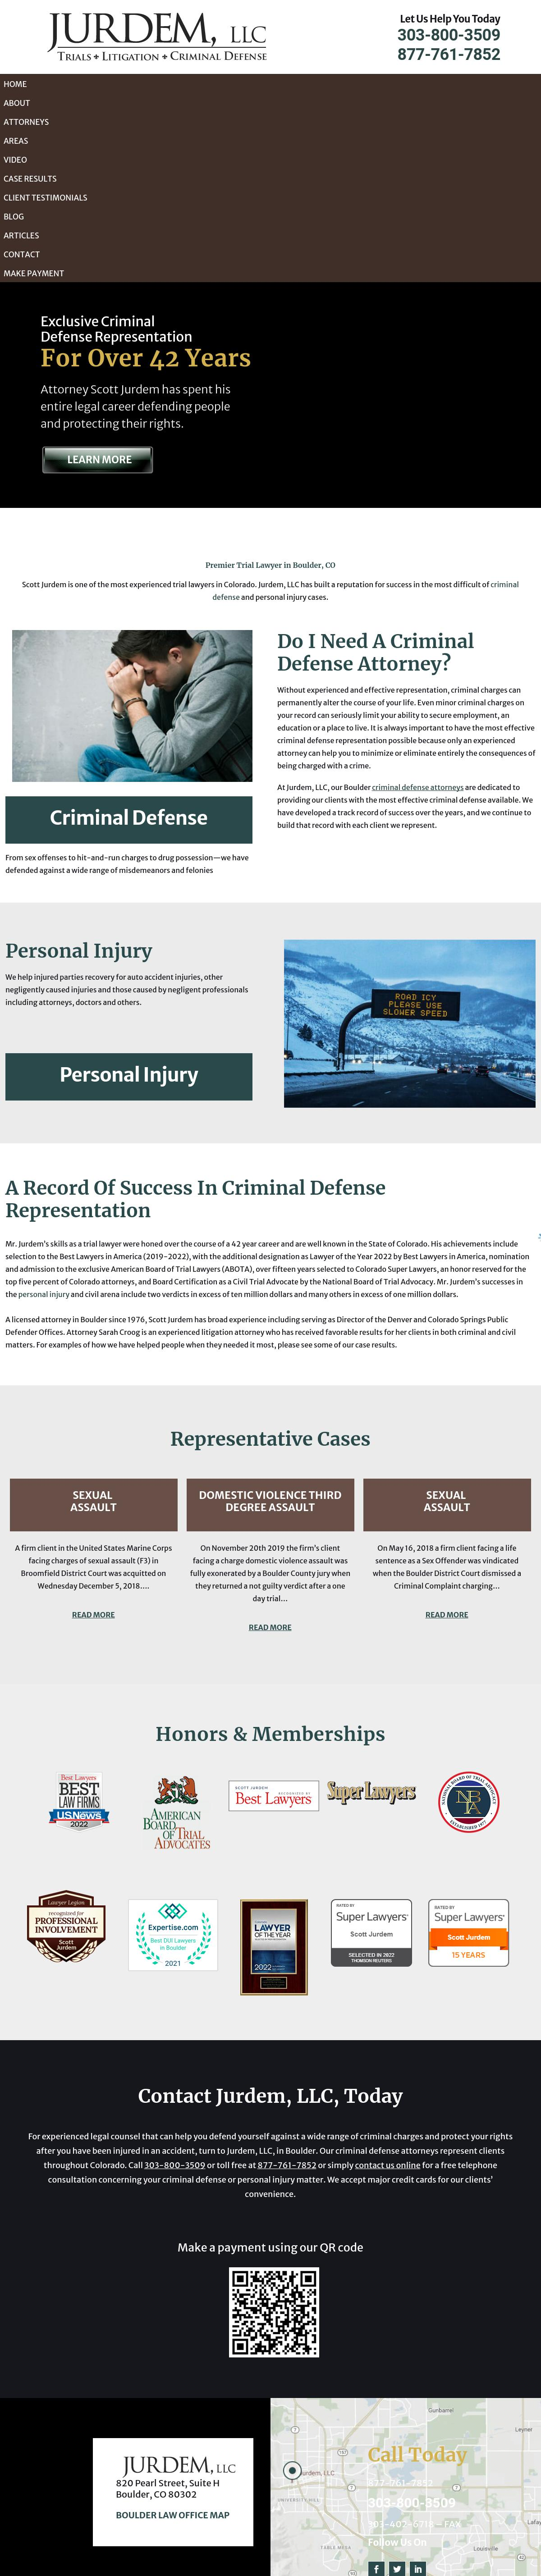 Jurdem, LLC - Boulder CO Lawyers